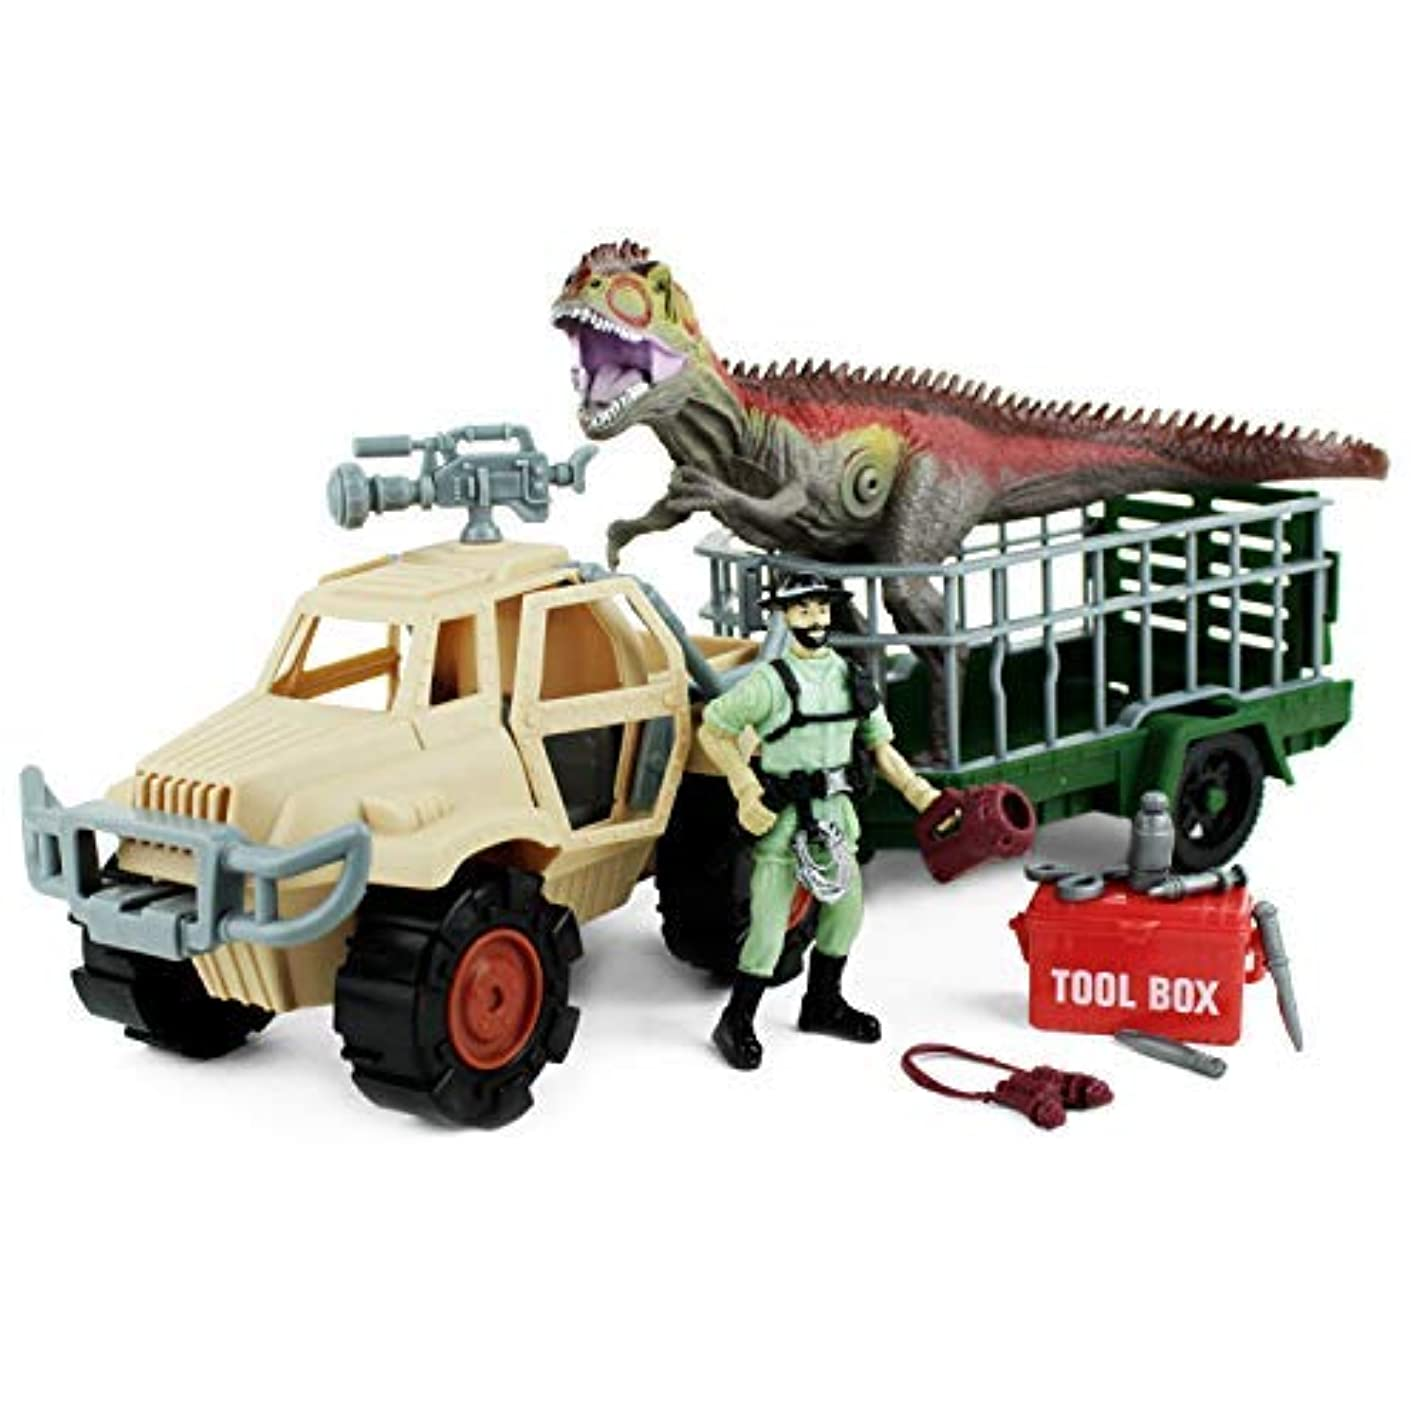 Boley Dinosaur Explorer Toy - Includes A Roaring T-Rex Dinosaur, Dinosaur Explorer Figure, Tool Box, and More! - 13 Piece Jurassic Action Playset - Offers Hours of Pretend Play!